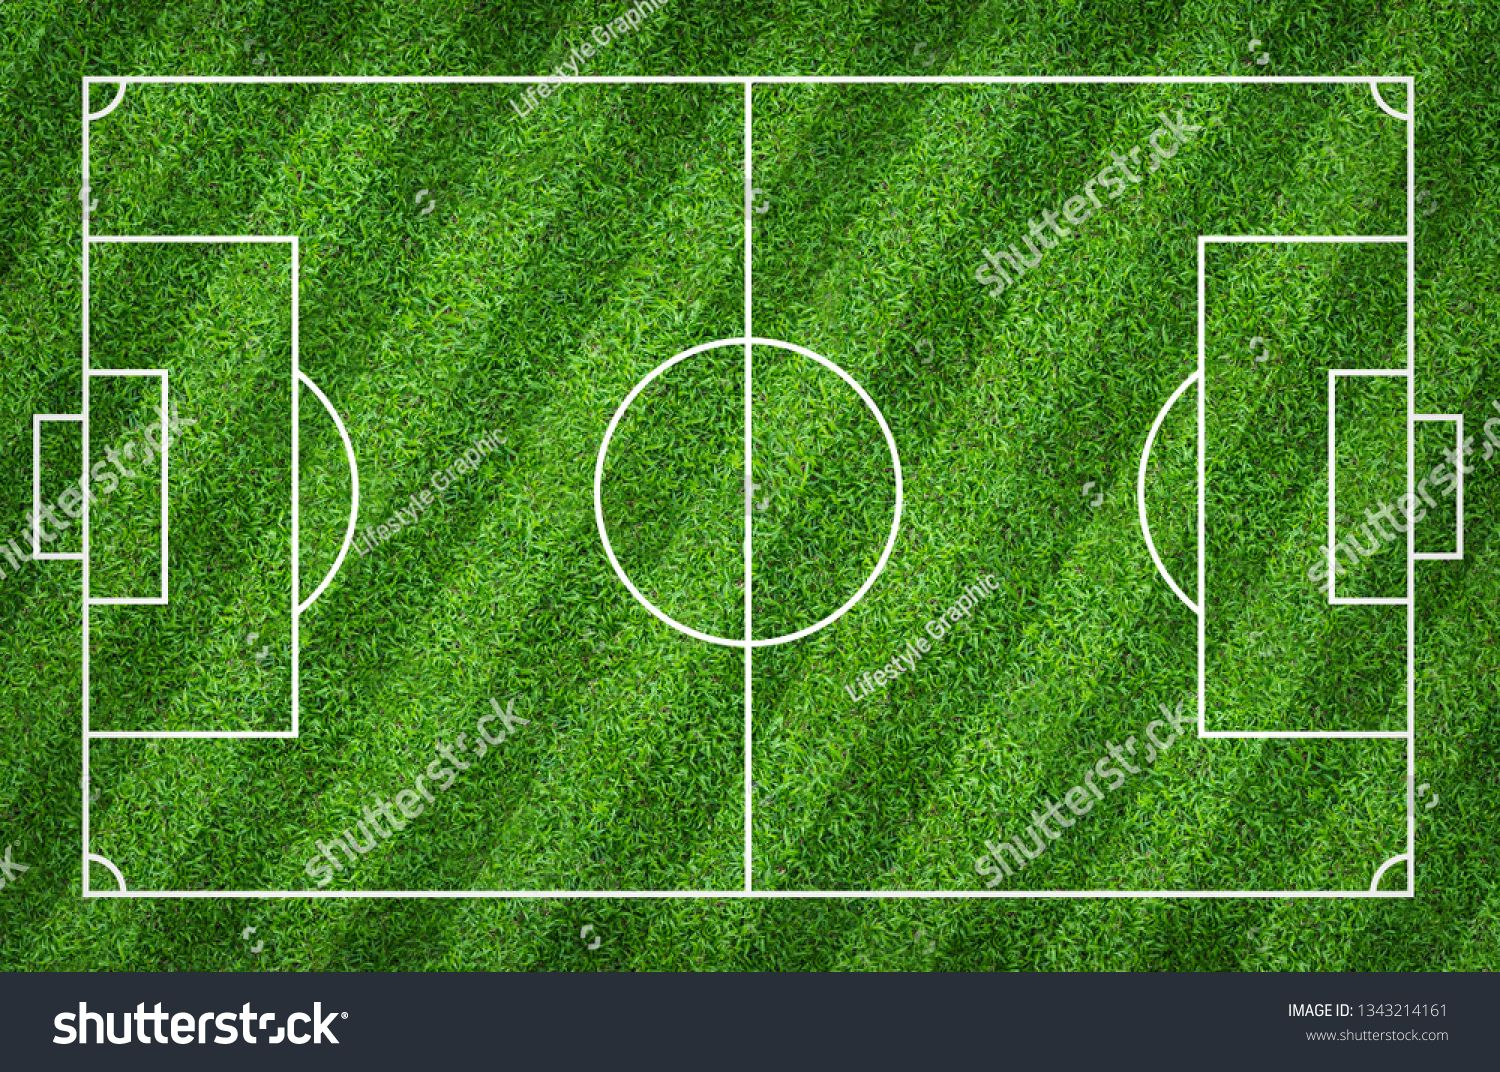 Football Field Or Soccer Field For Background Green Lawn Court For Create Sport Game Ad Sponsored Background Gre Soccer Field Football Field Green Lawn